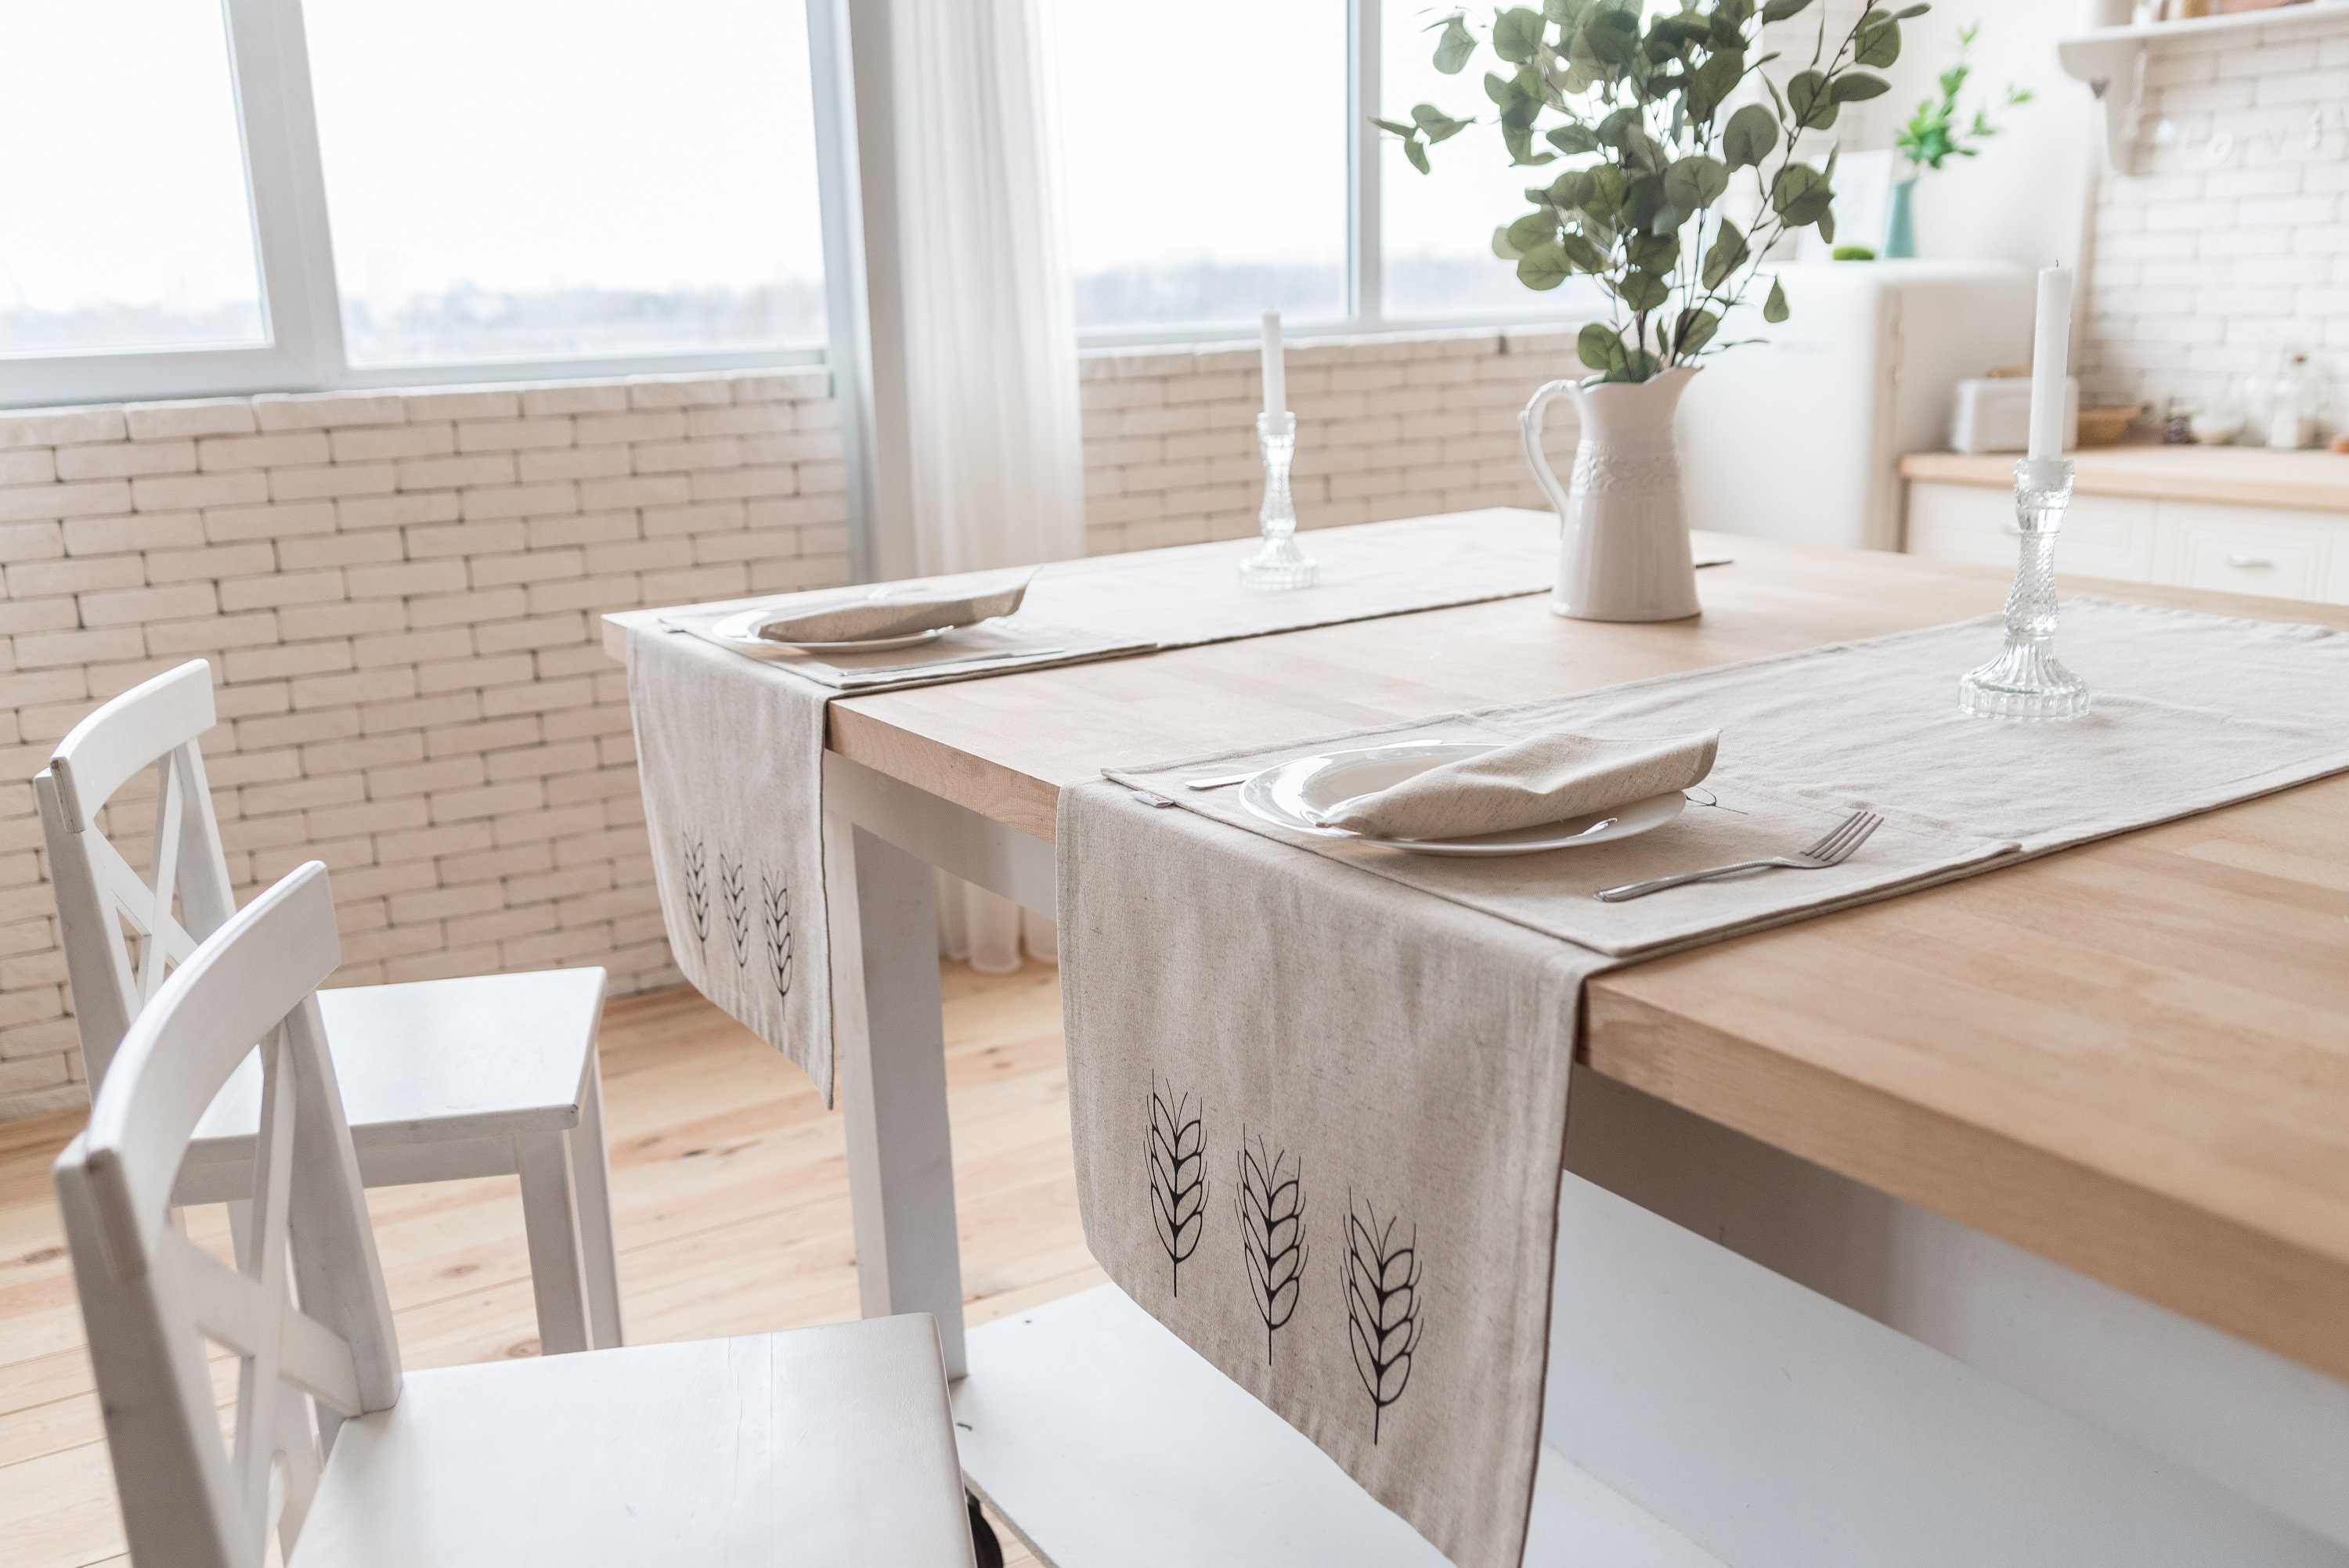 Merveilleux Hemp Table Runner With Spikelet Print. Kitchen Table Runner With Simple  Design Made With Natural Materials. Eco Runner For Home